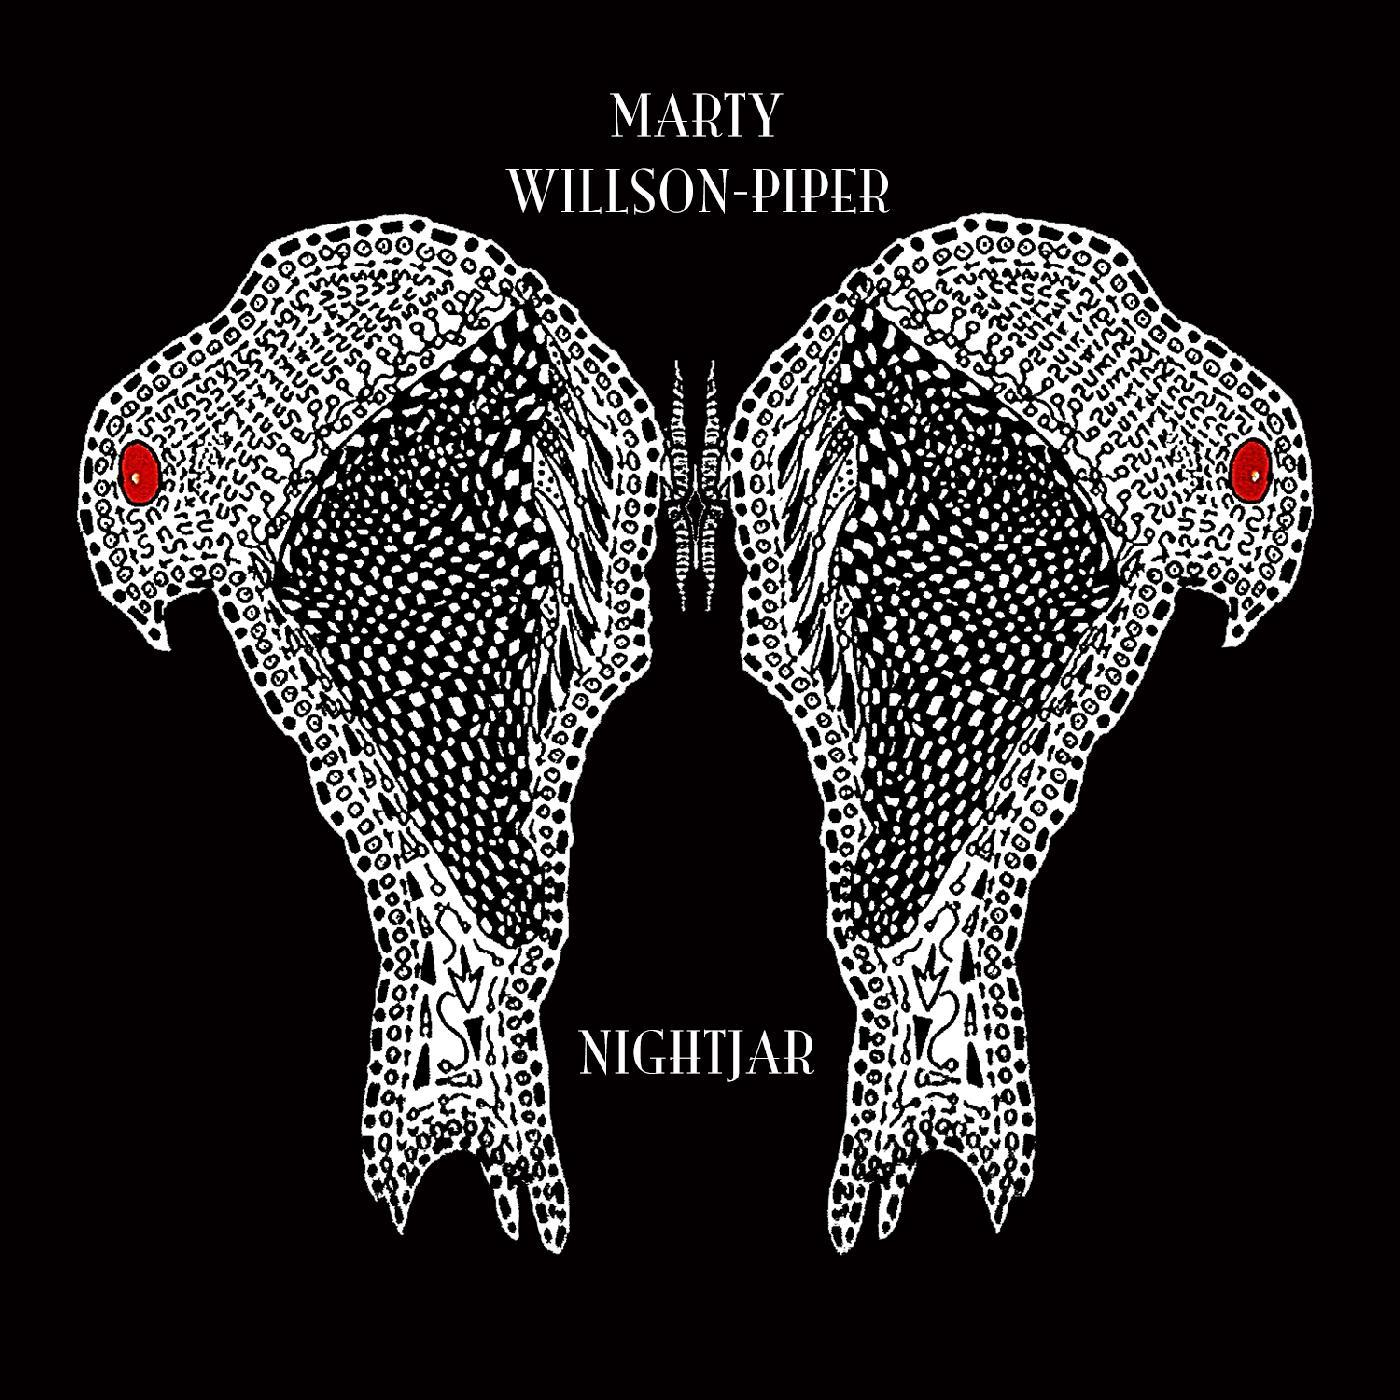 Marty Willson-Piper - Nightjar [RSD Drops Sep 2020]